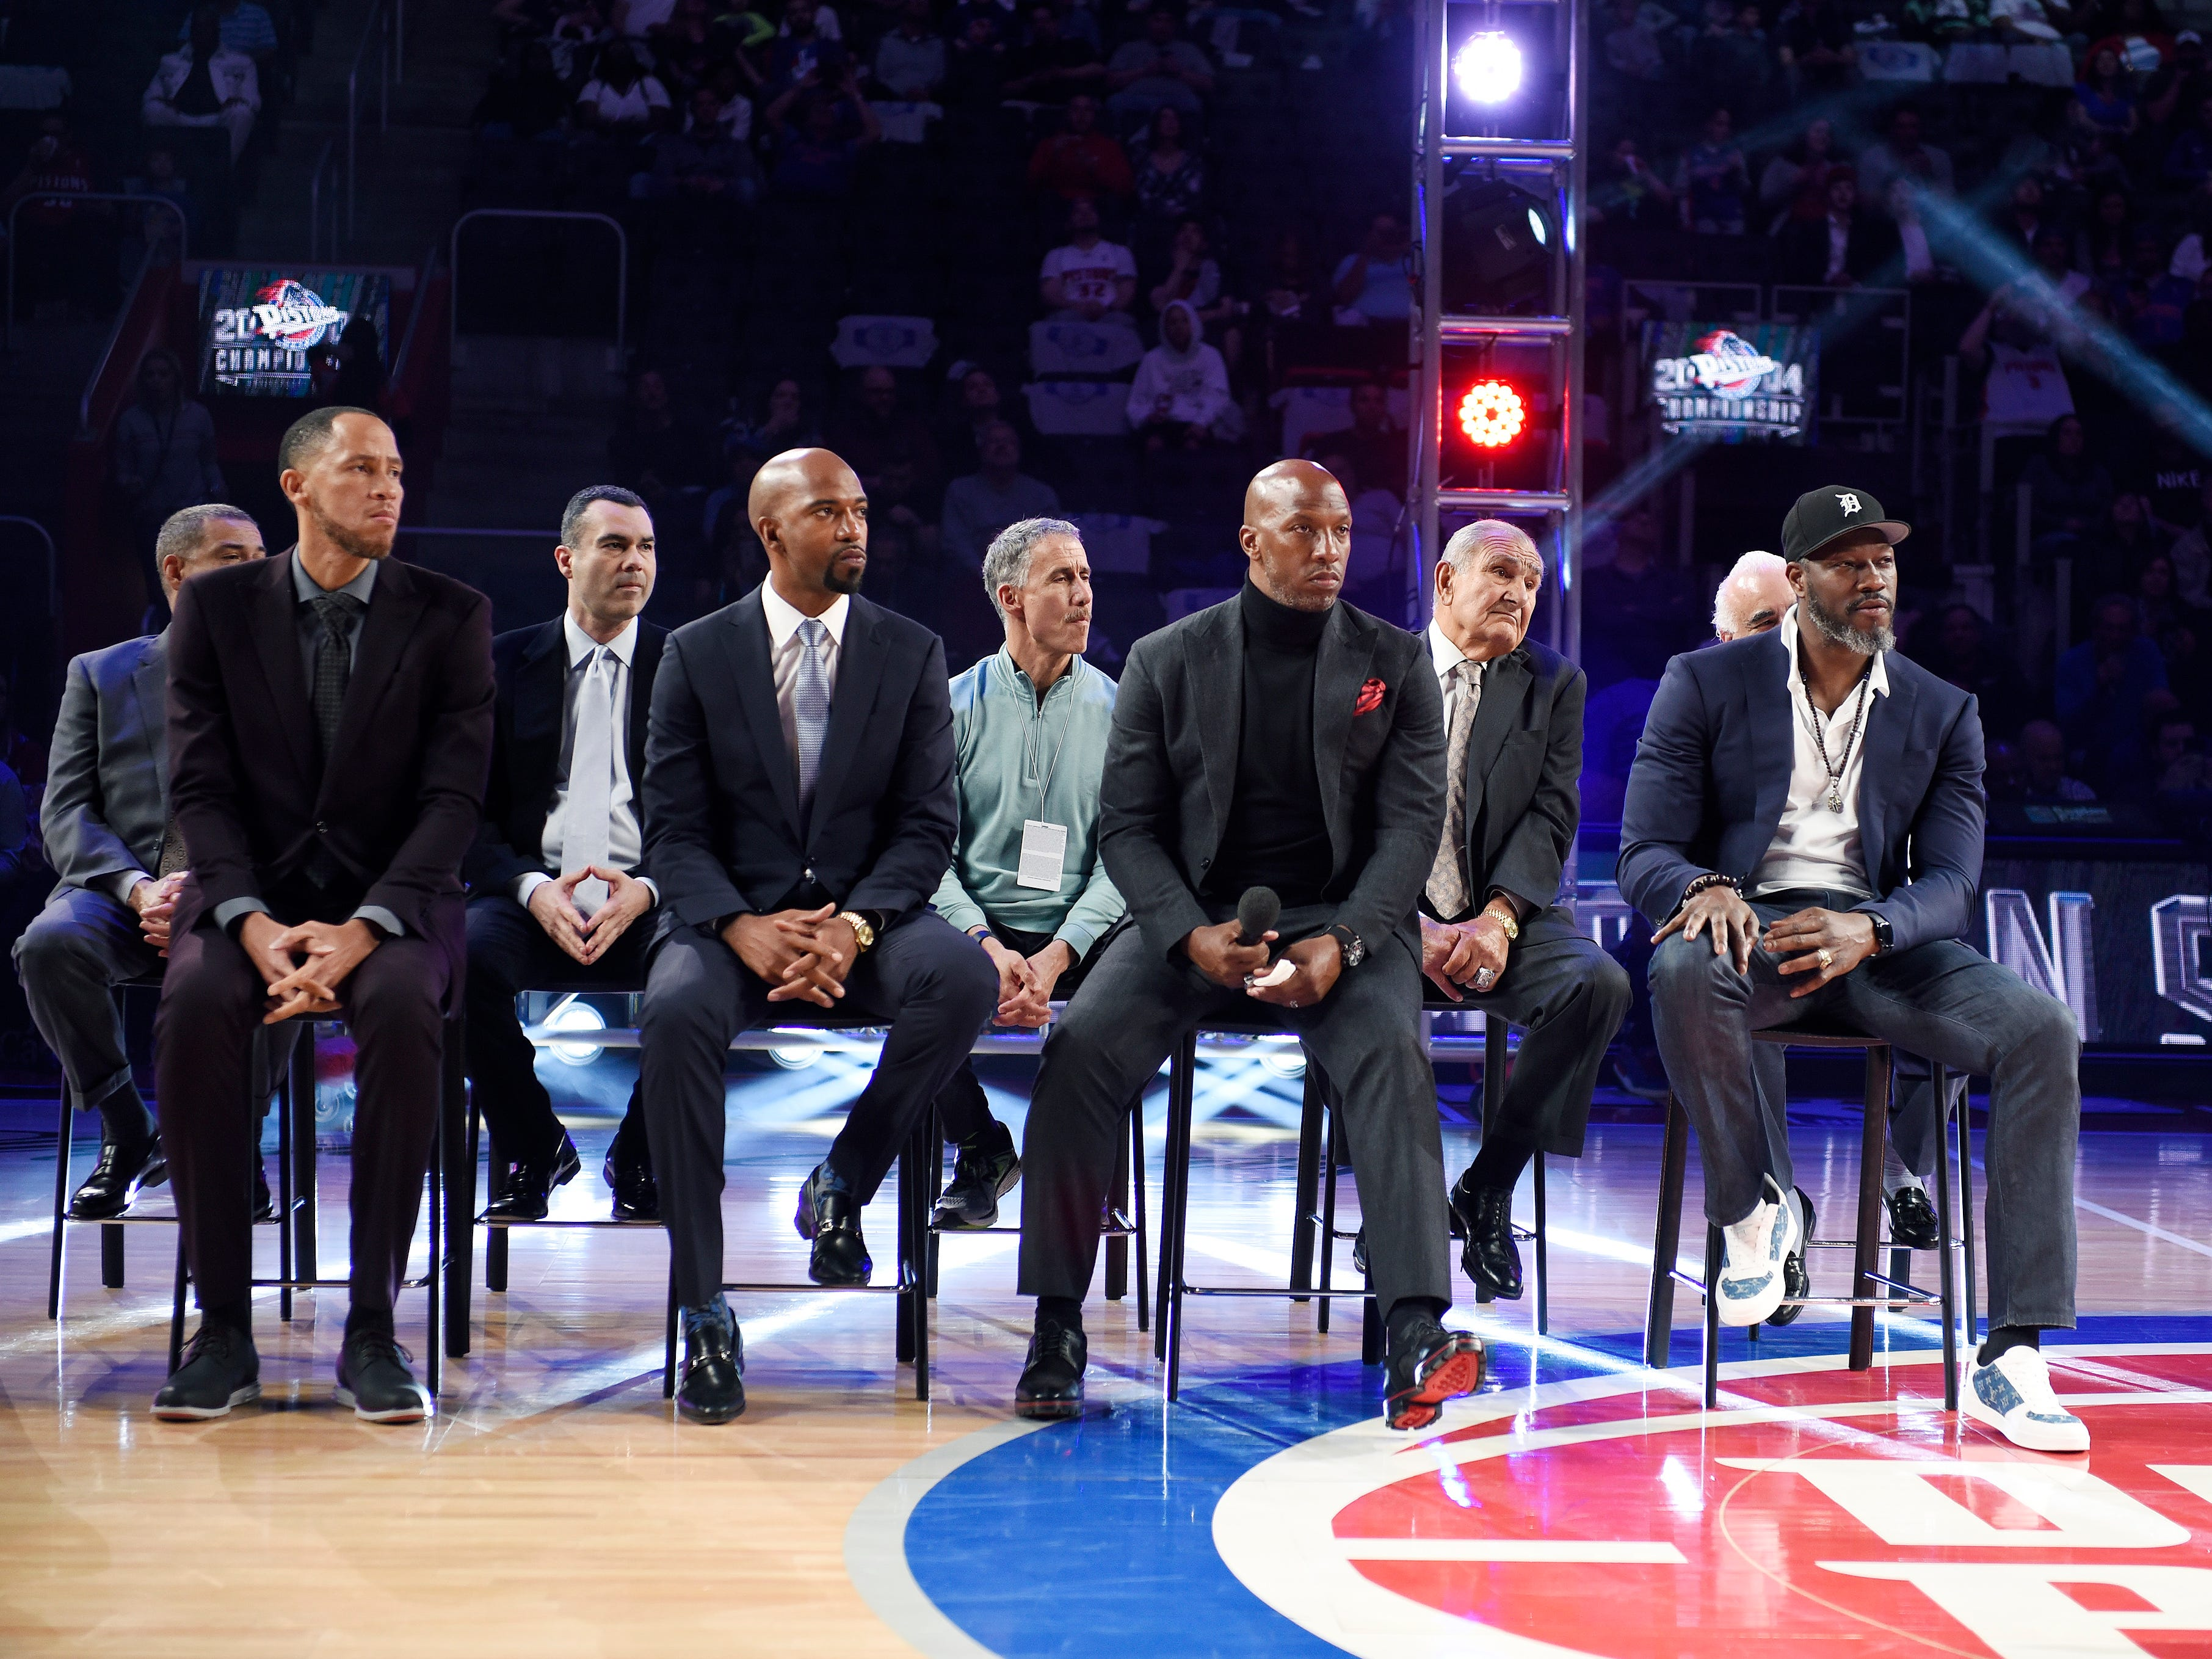 From left, Former Pistons Tayshaun Prince, Richard Hamilton, Chauncey Billups and Ben Wallace listen during the ceremony honoring the 2004 Championship team.